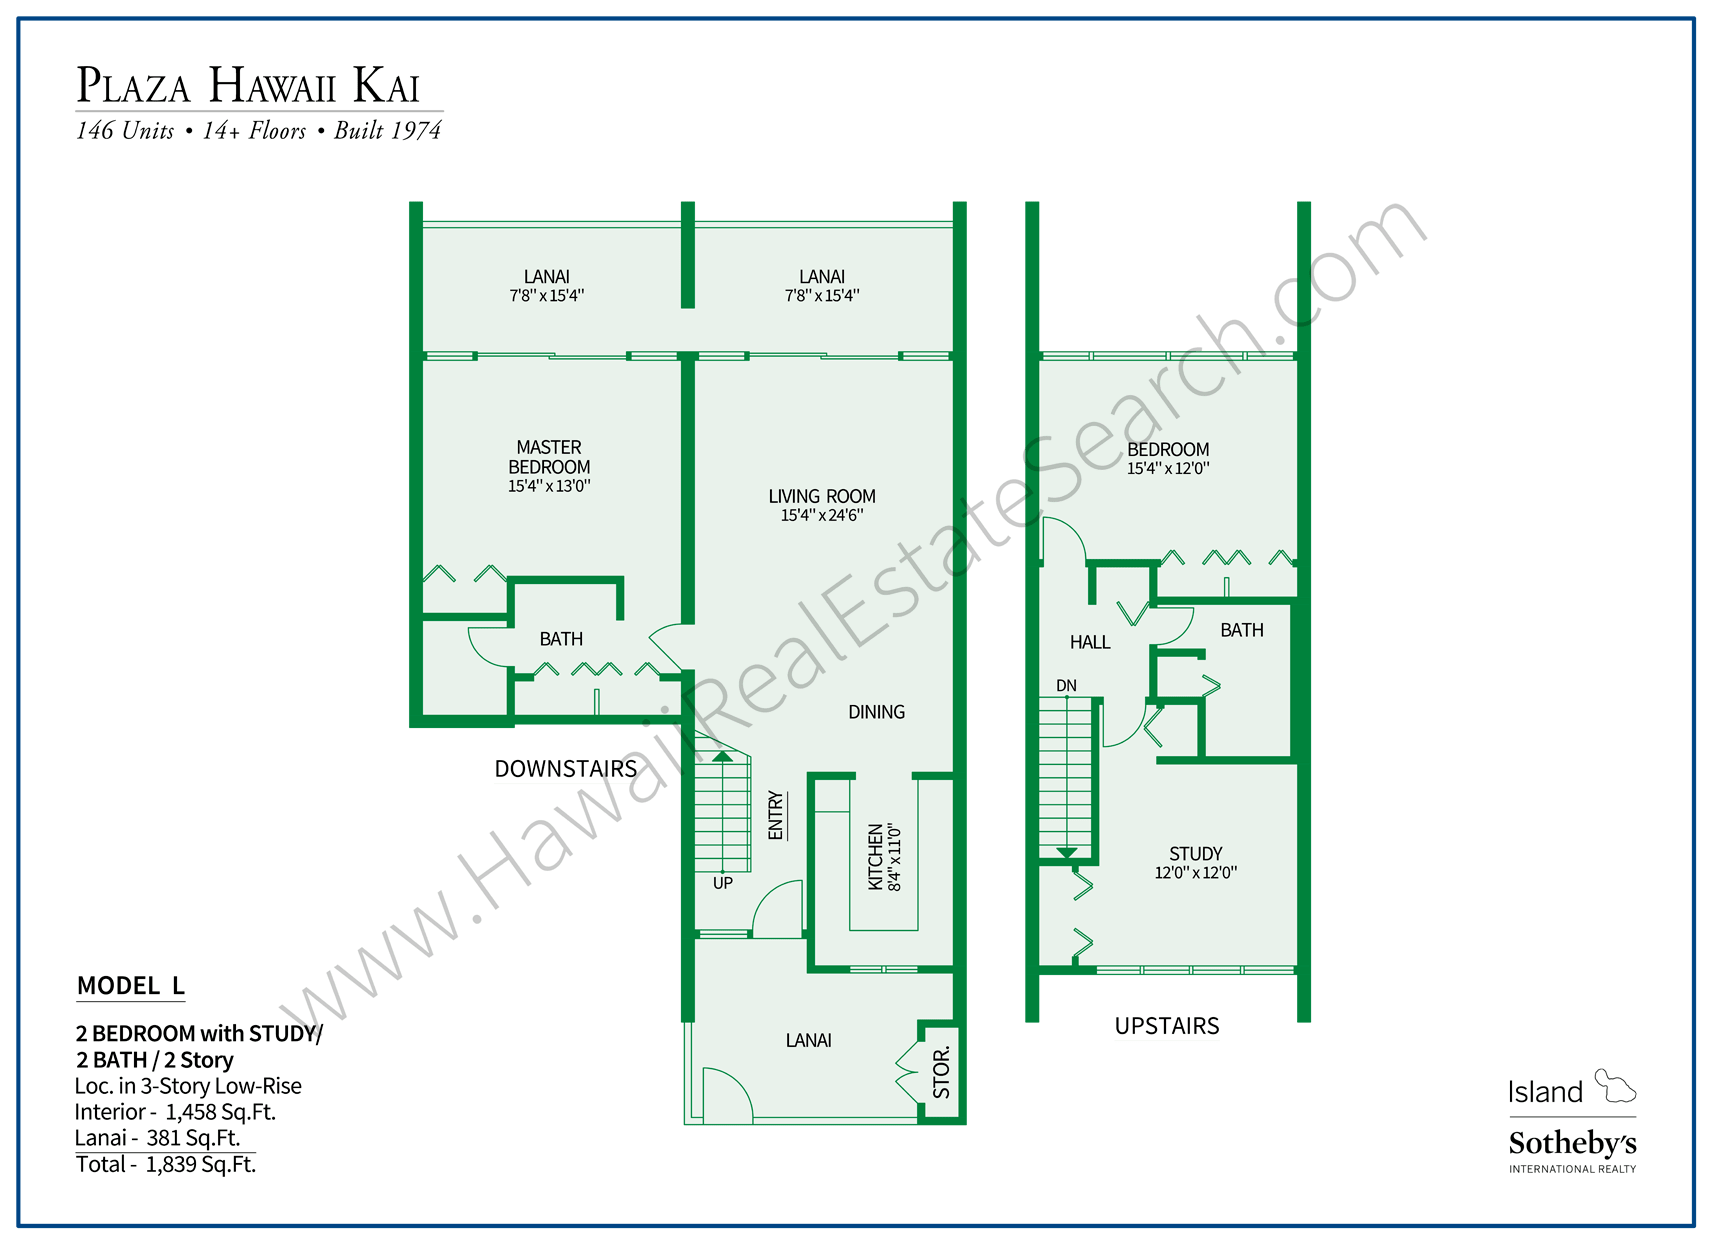 Plaza Hawaii Kai Floor Plan L